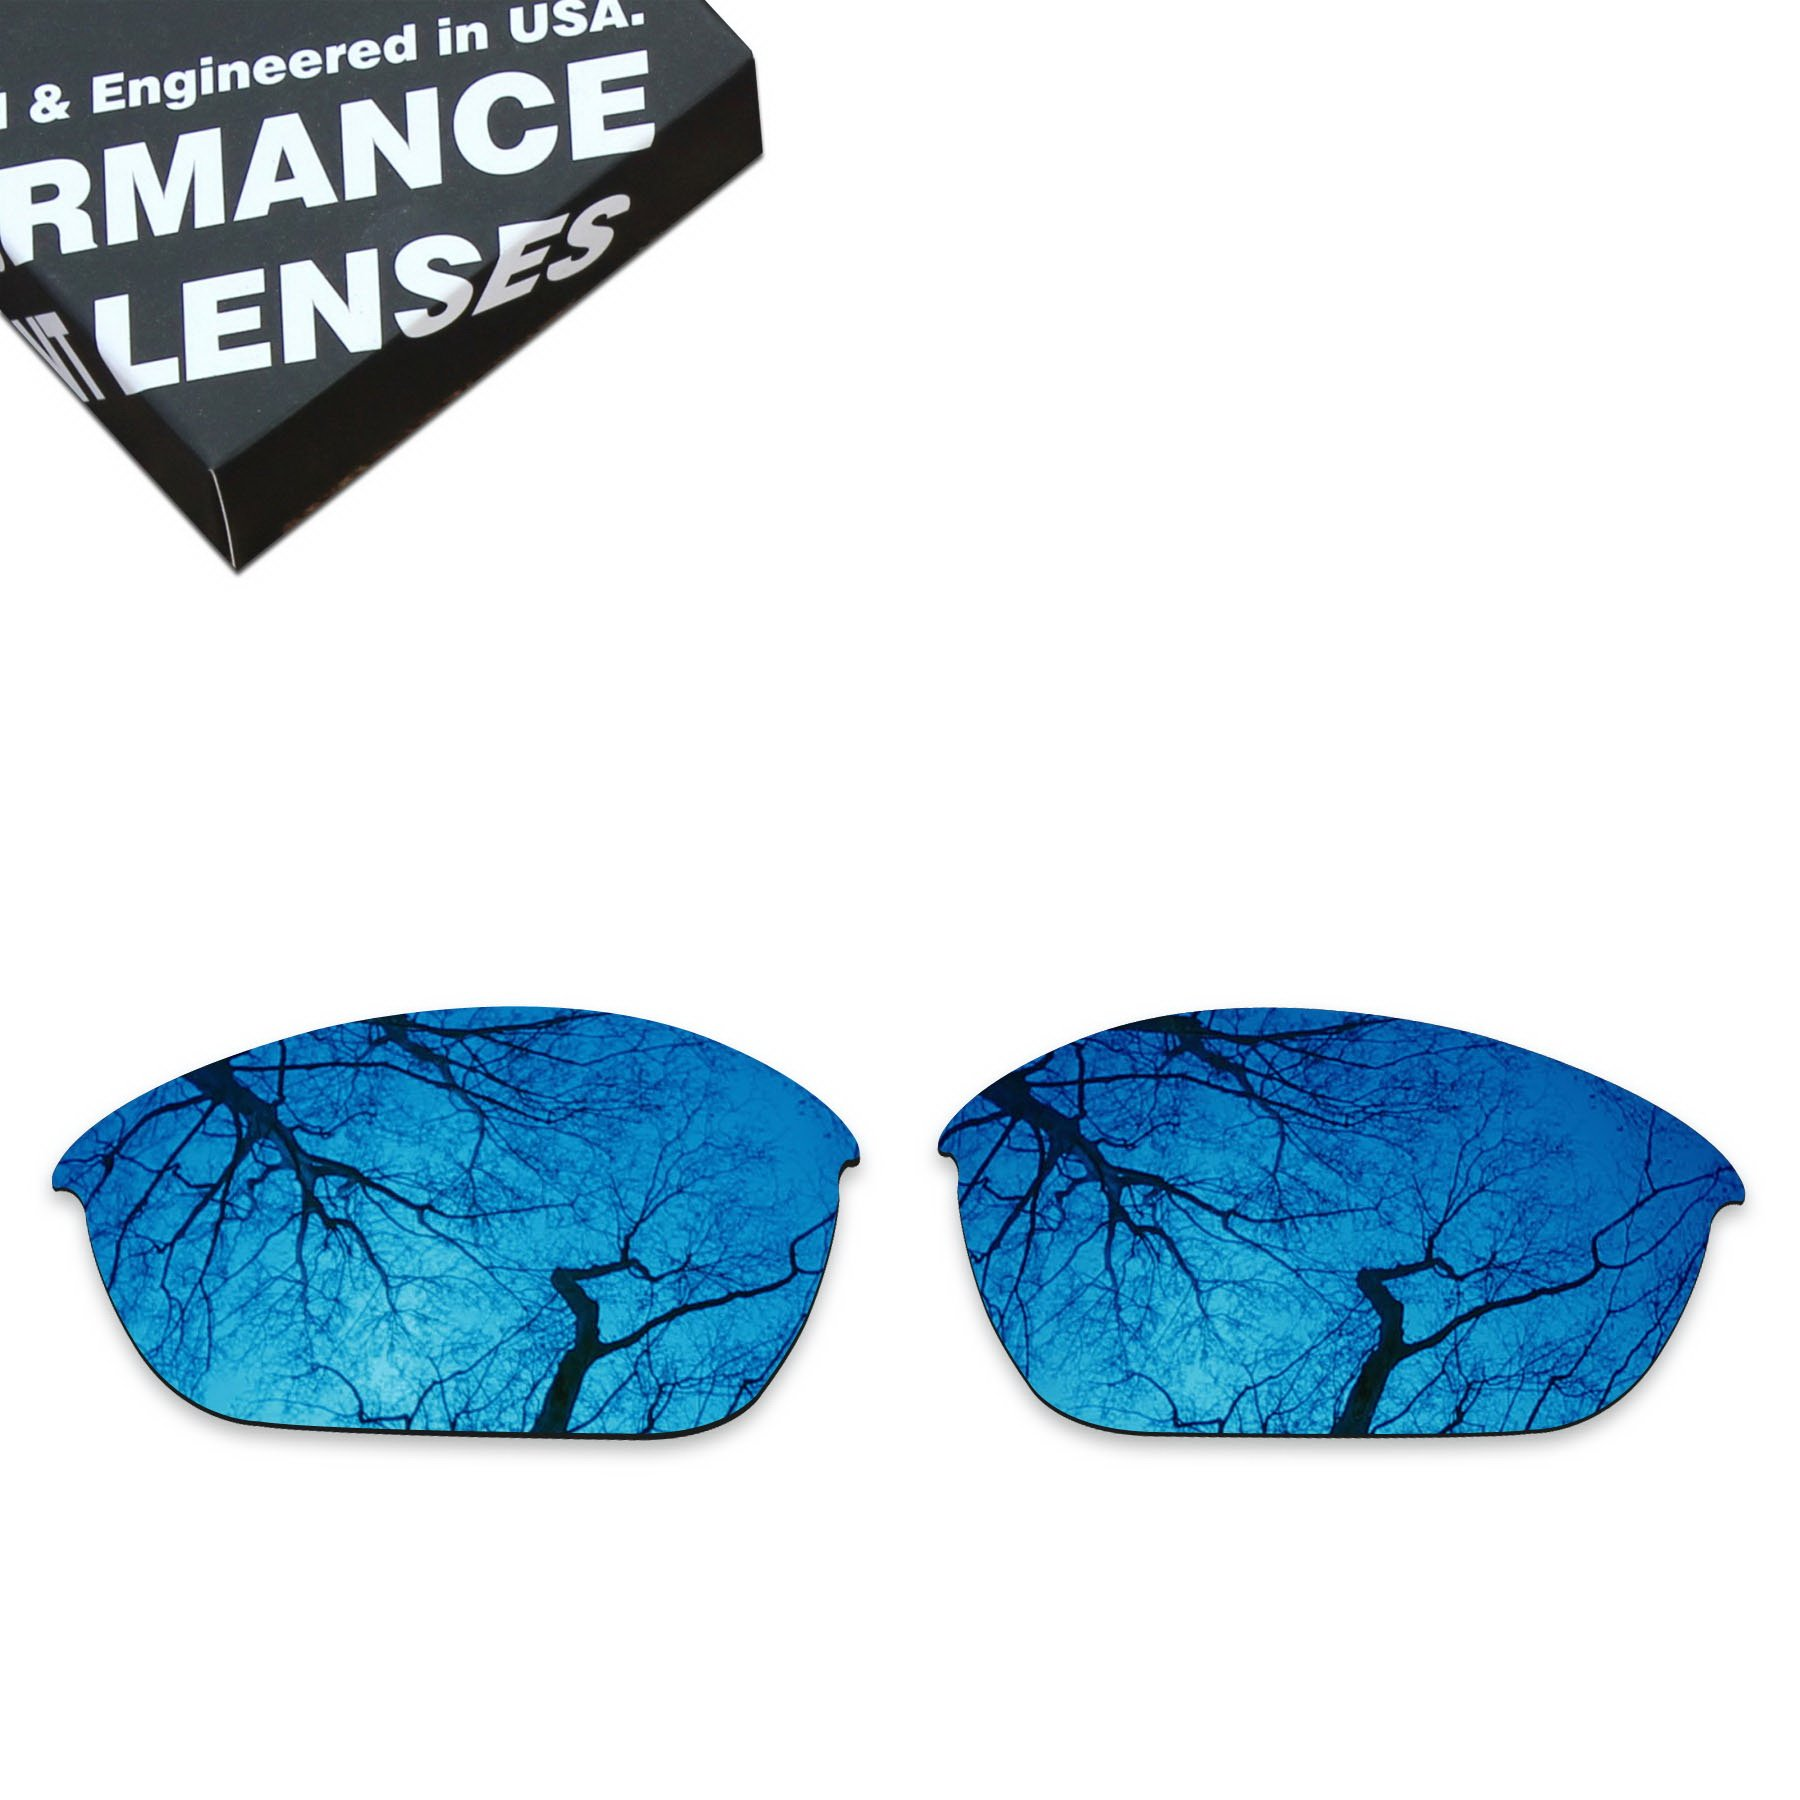 ToughAsNails Polarized Lens Replacement for Oakley Half Jacket 2.0 Sunglass - More Options by ToughAsNails